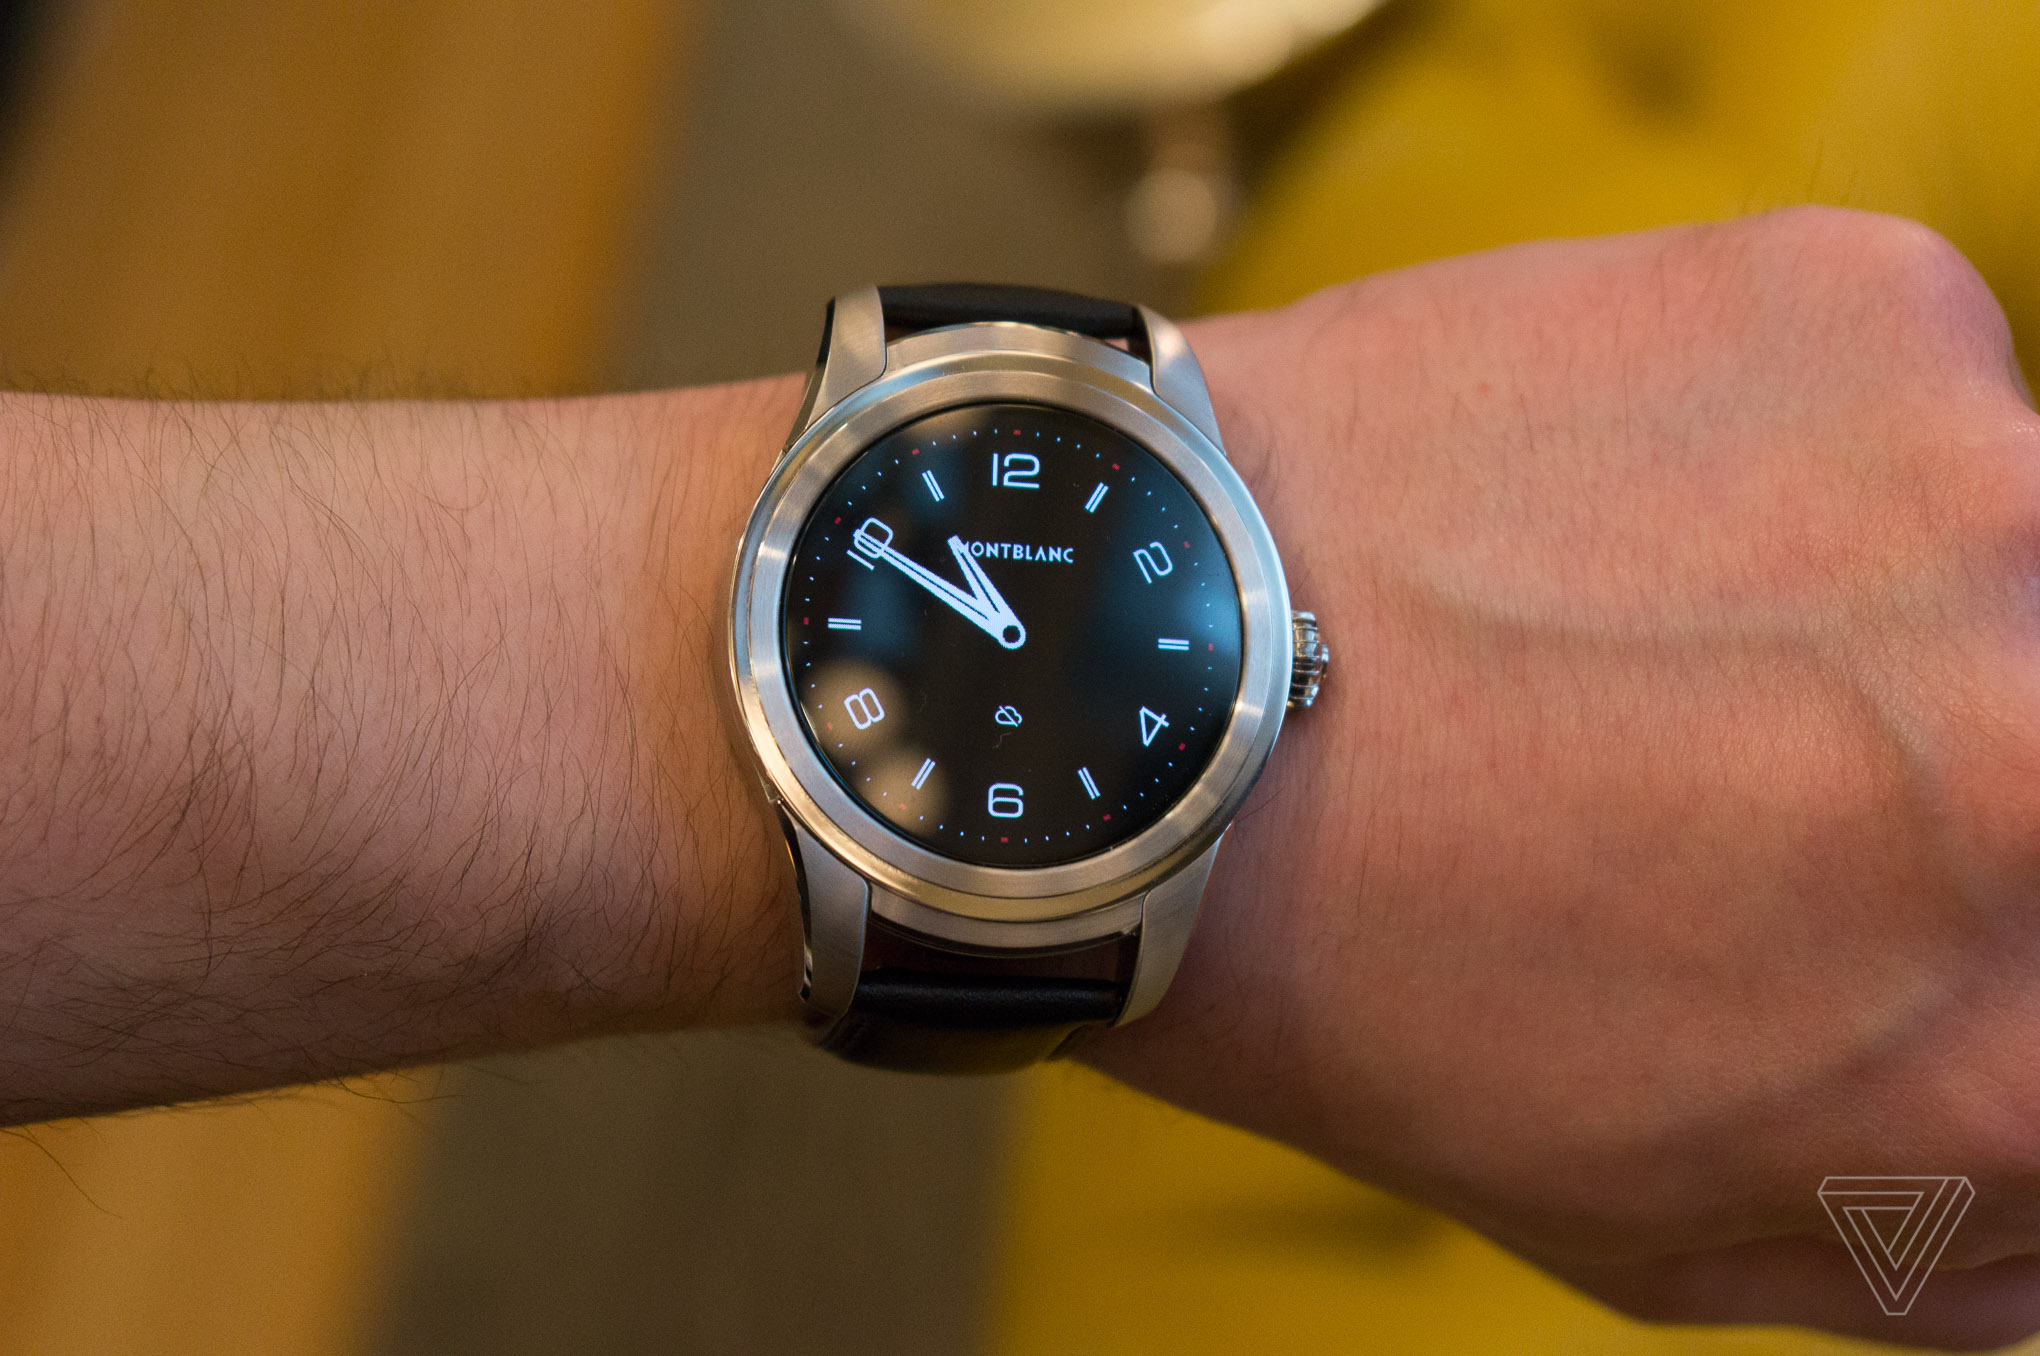 Montblanc S First Smartwatch Is A Big Lump Of Android Wear